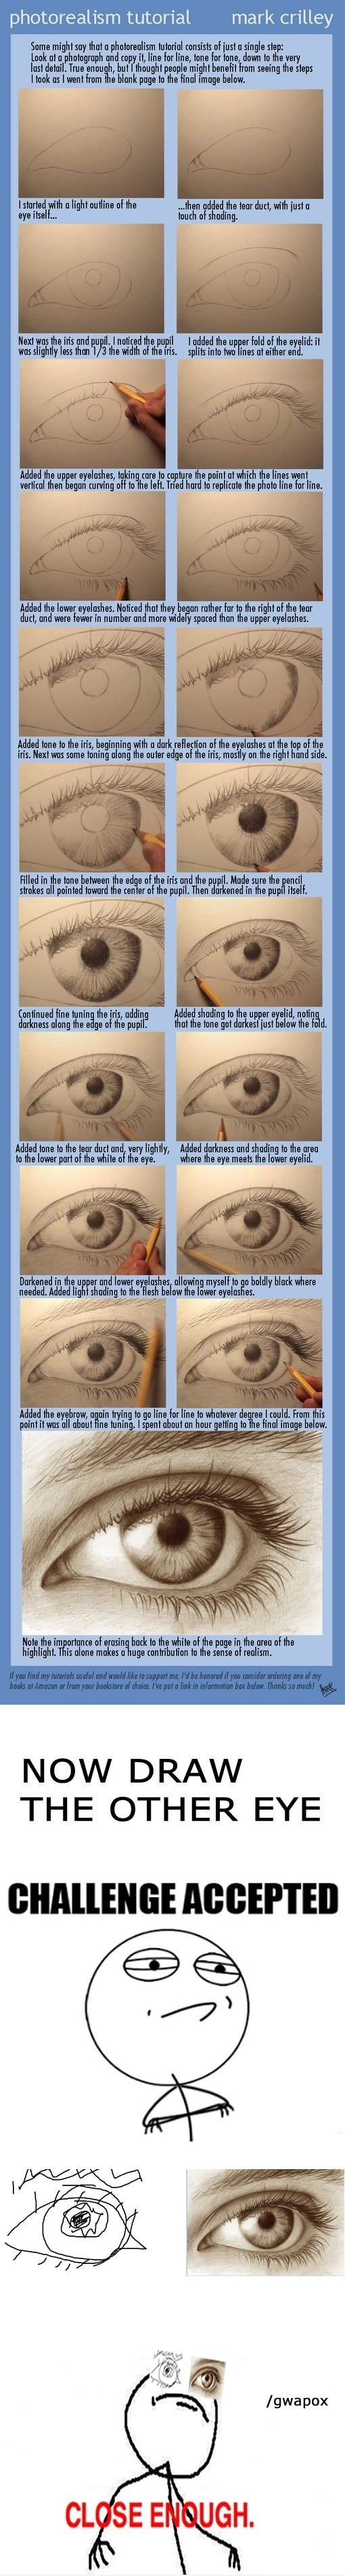 How to draw a eye that looks like a photo, i will have to try this on e day